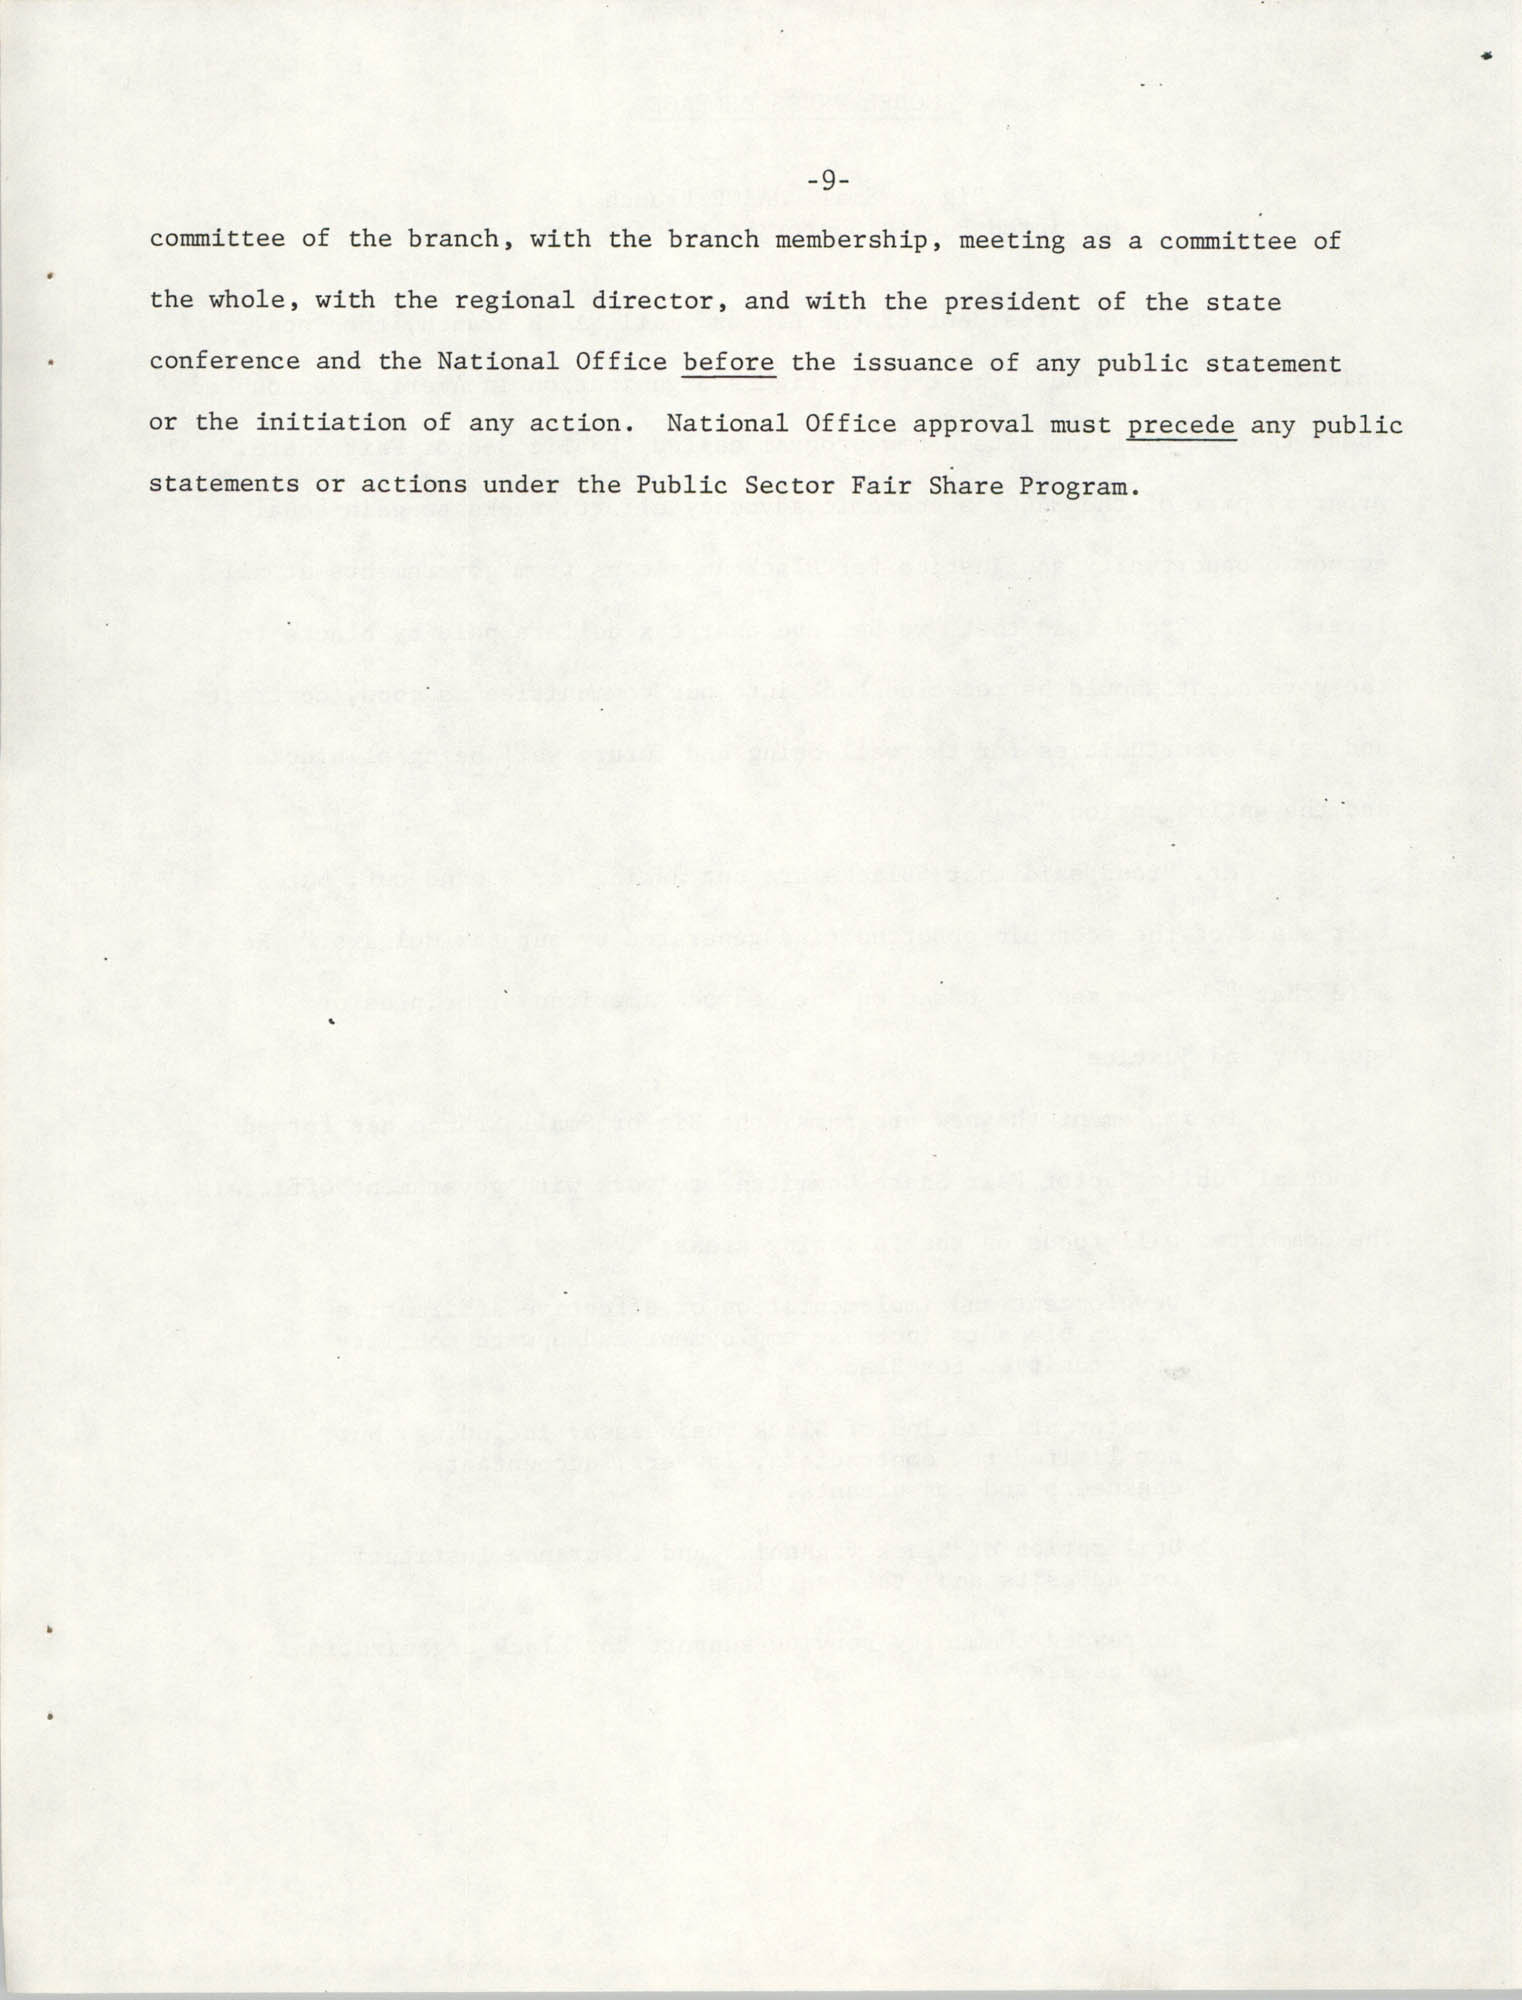 Governmental Fair Share Workshop for South Carolina Conference of Branches, October 11, 1985, Page 9